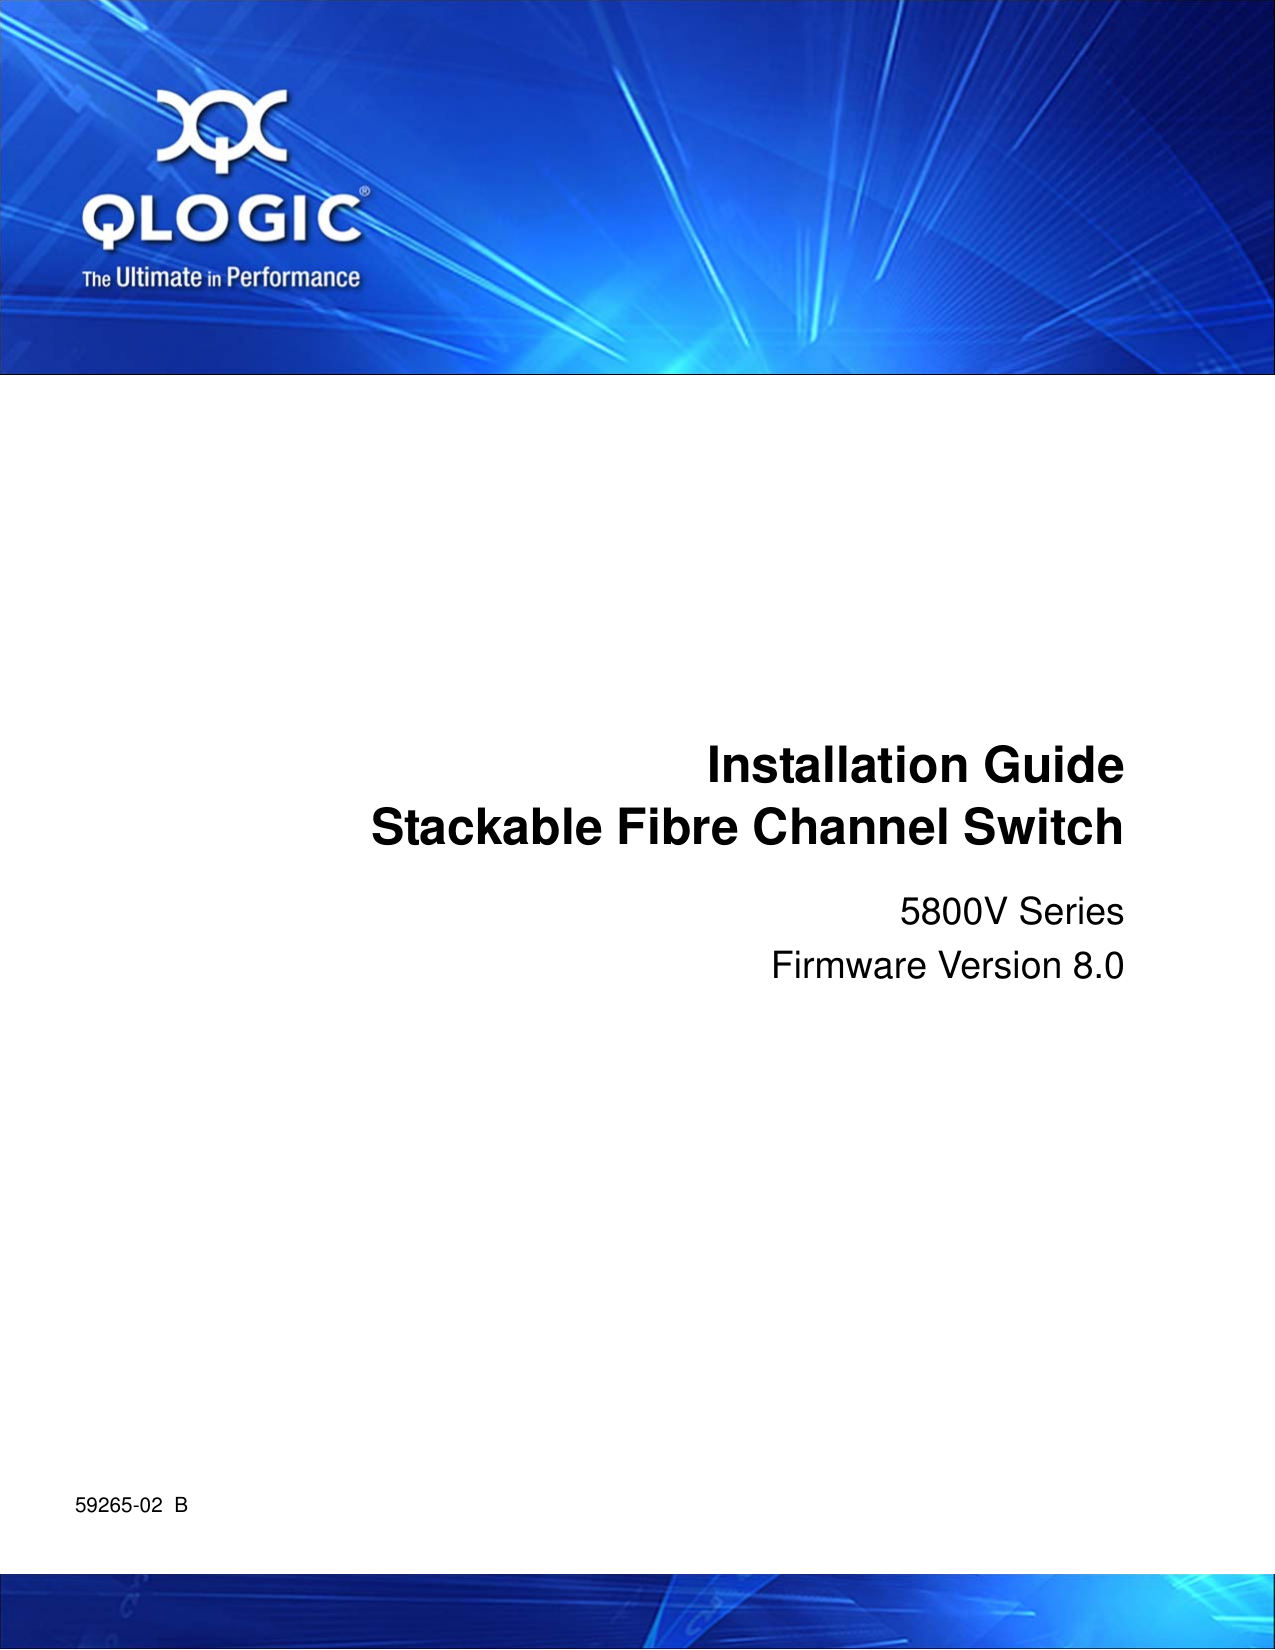 Q Logic 5800v Users Manual Qlogic Series Stackable Fibre Channel Switch Wizard 3way Electrical Wiring Tester Installation Guide